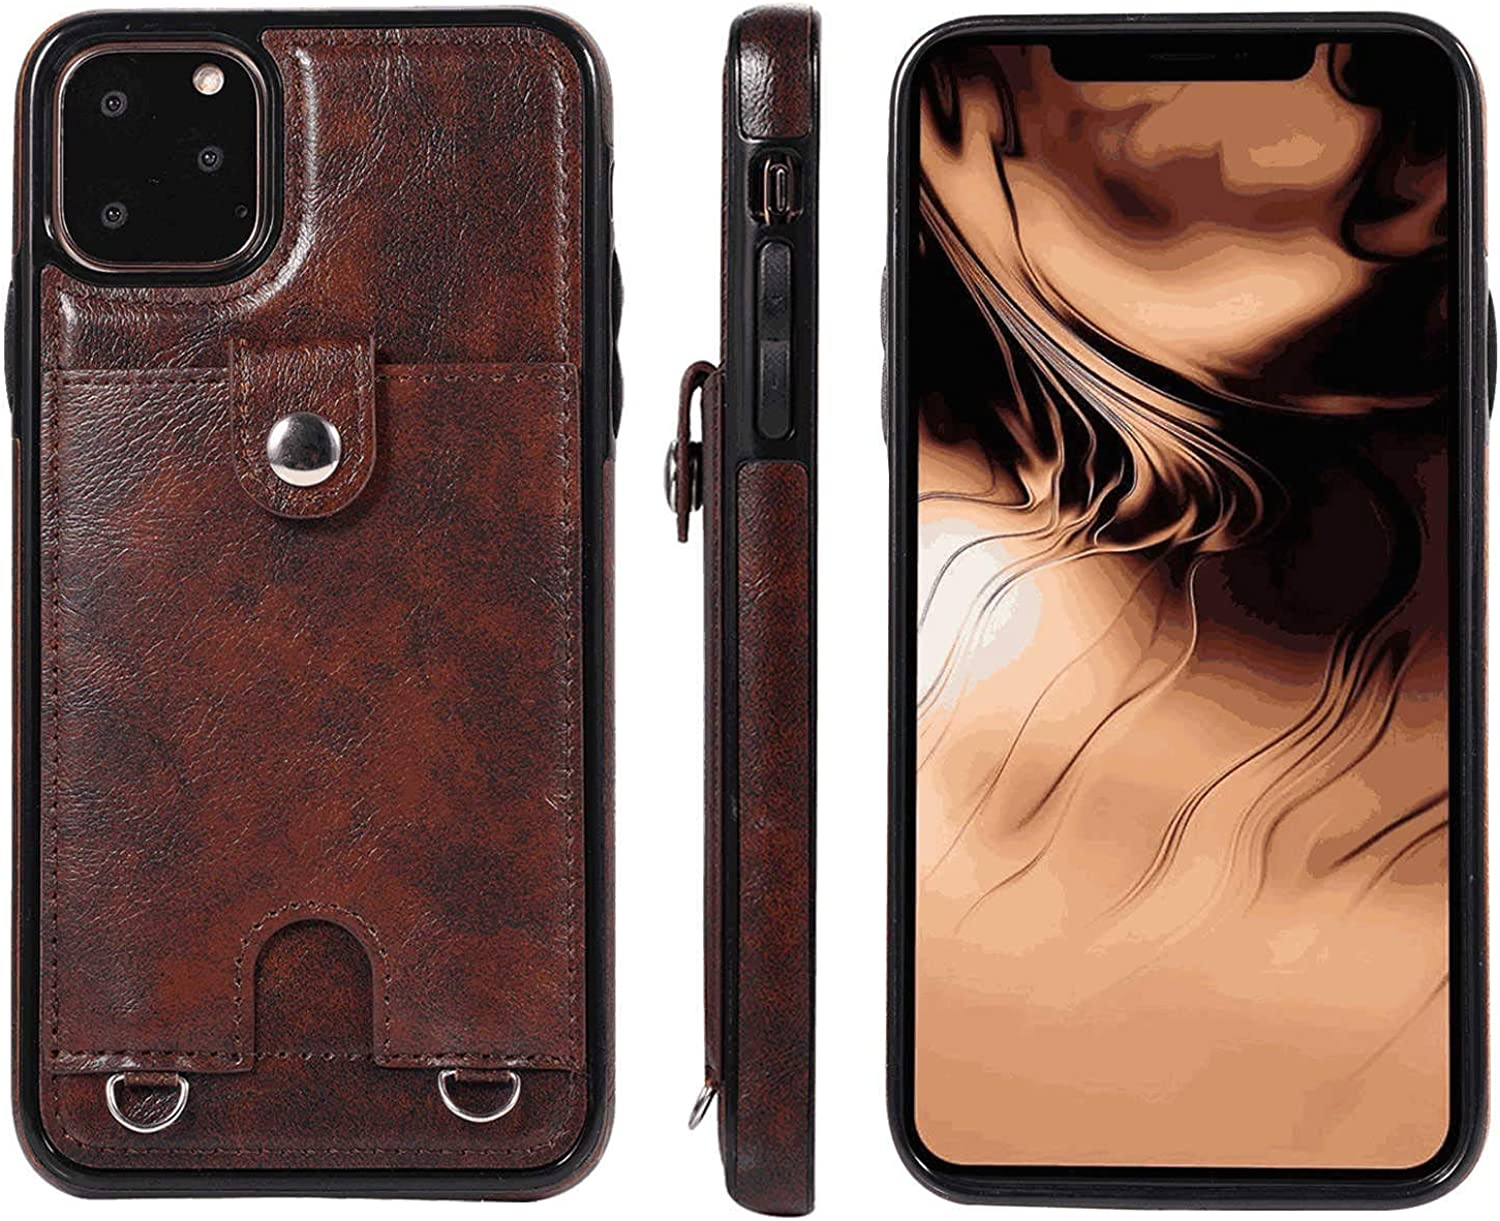 Samsung Galaxy S10 Flip Case Cover for Leather Card Holders Mobile Phone case Kickstand Extra-Shockproof Business Flip Cover